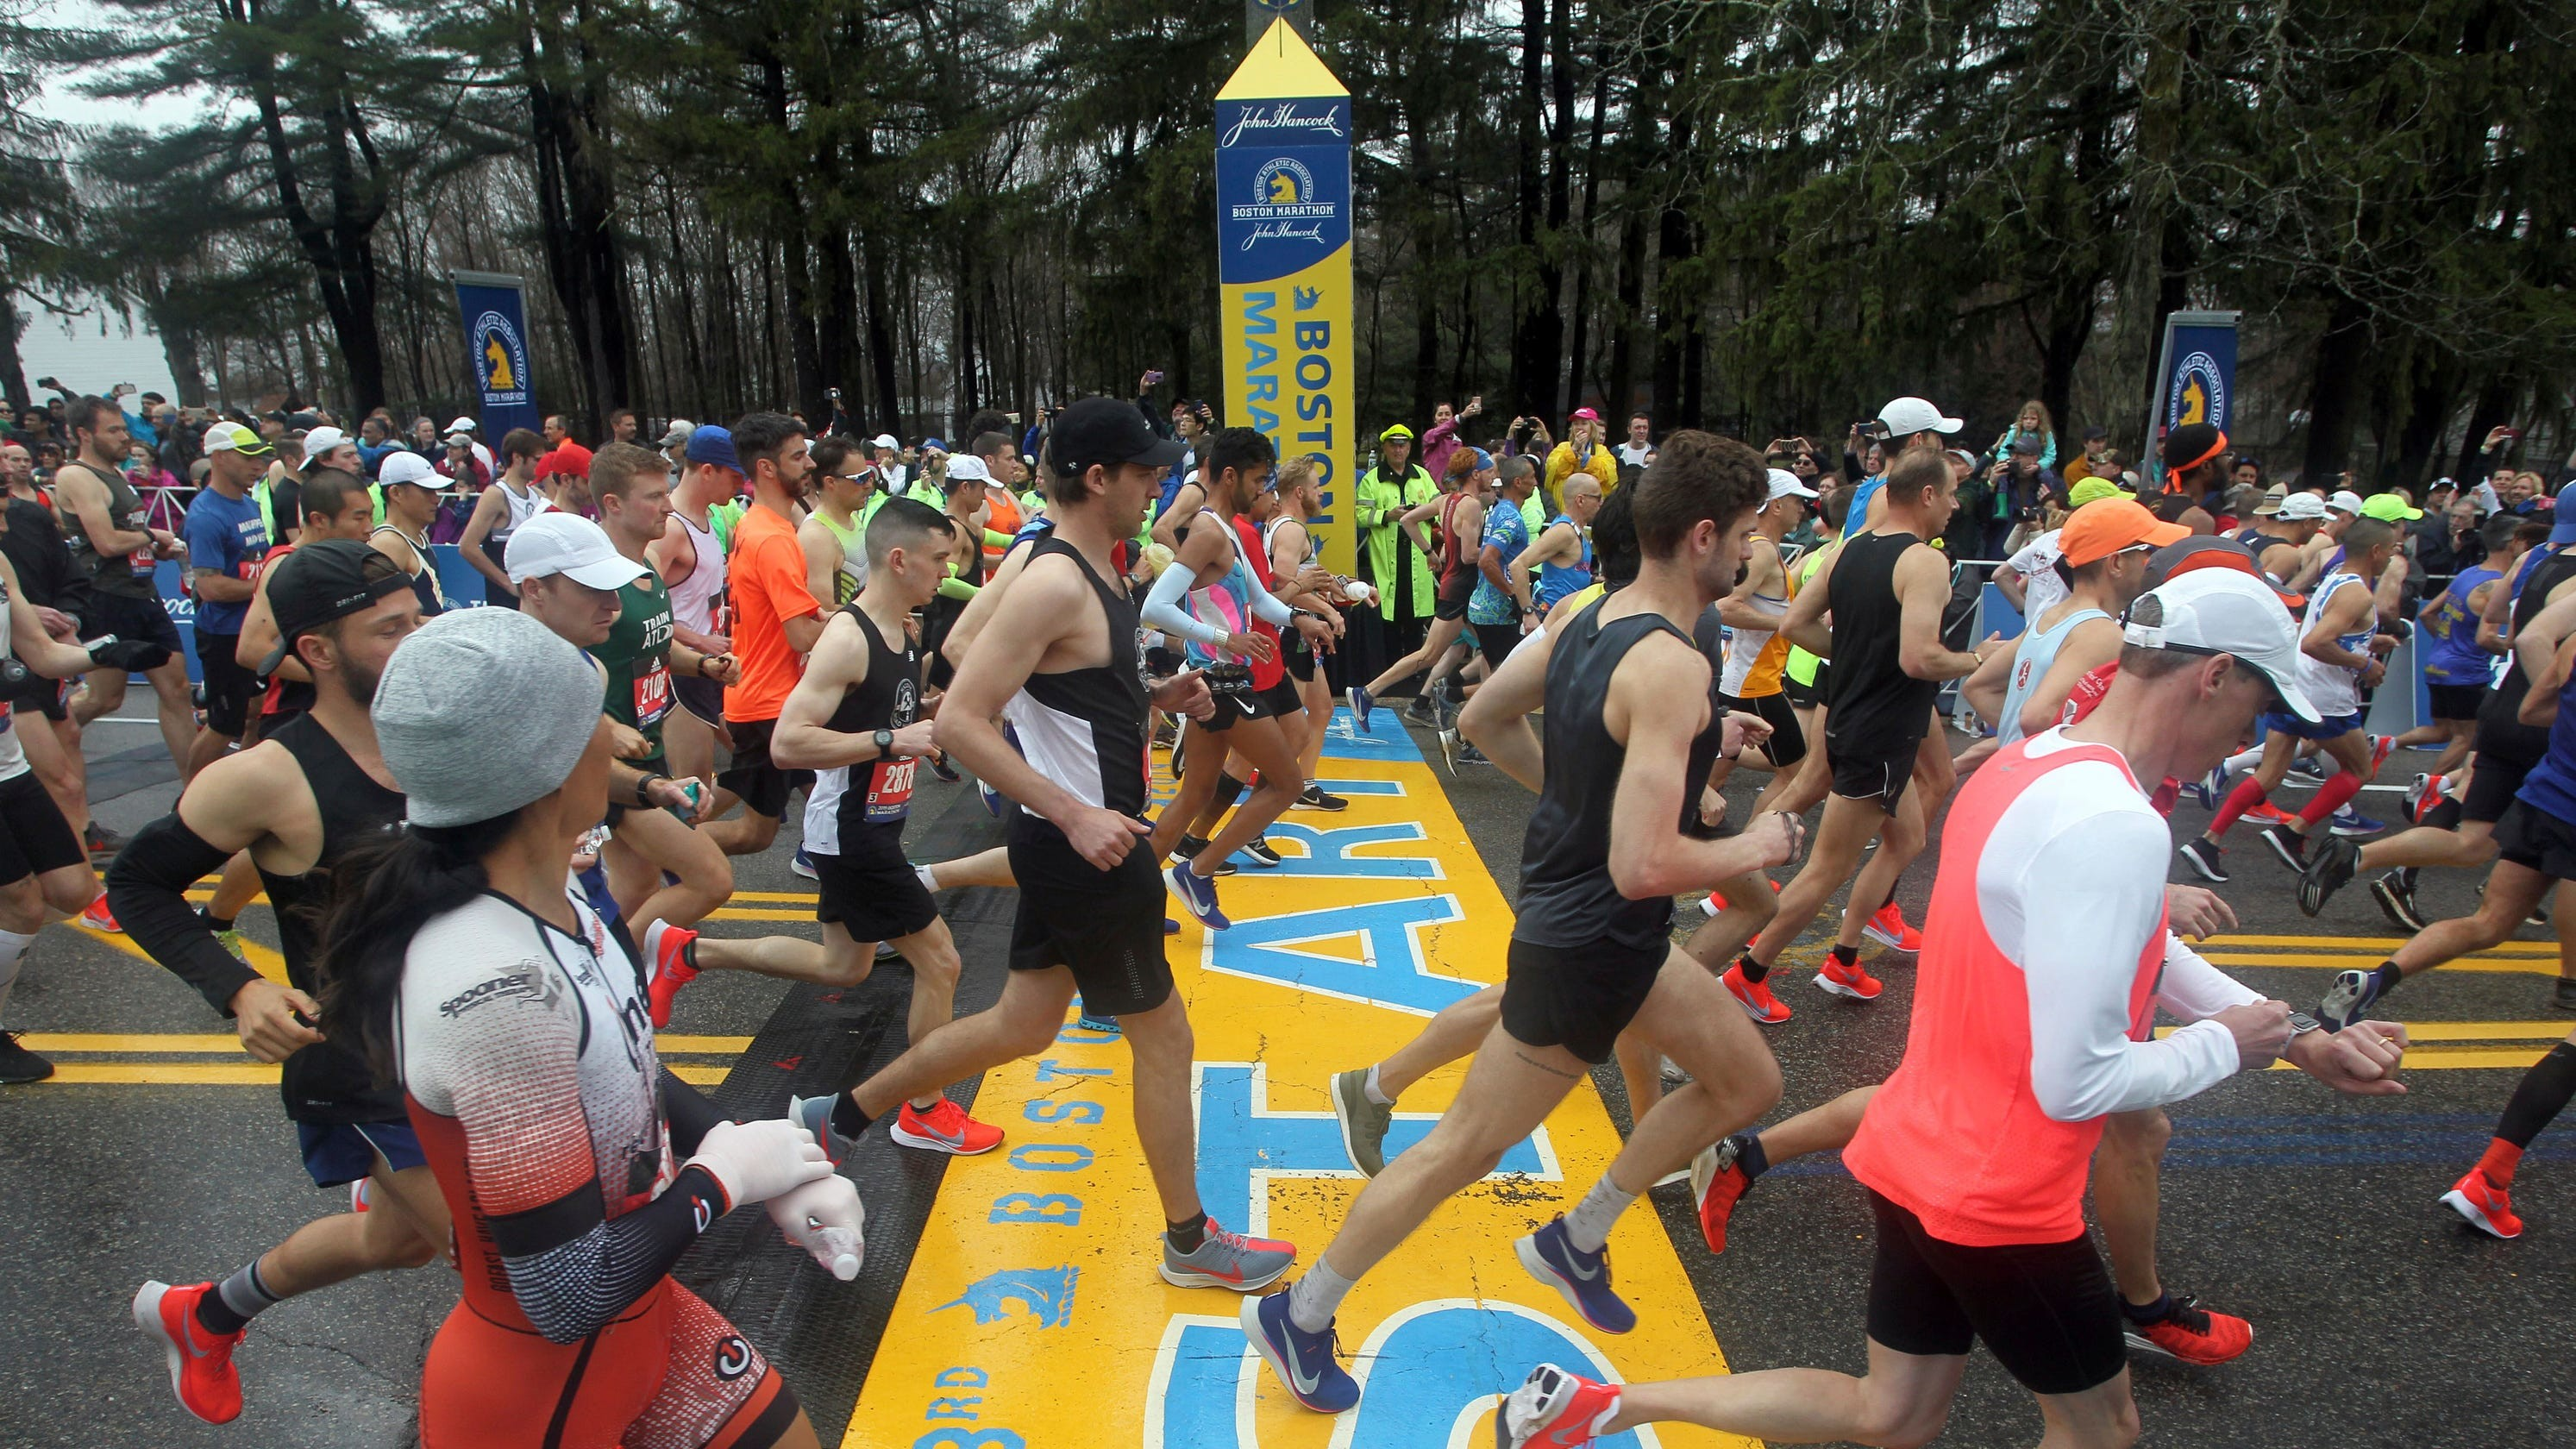 Members of the 2020 Boston Marathon Official Charity Program will be invited to return as official charity program members next year